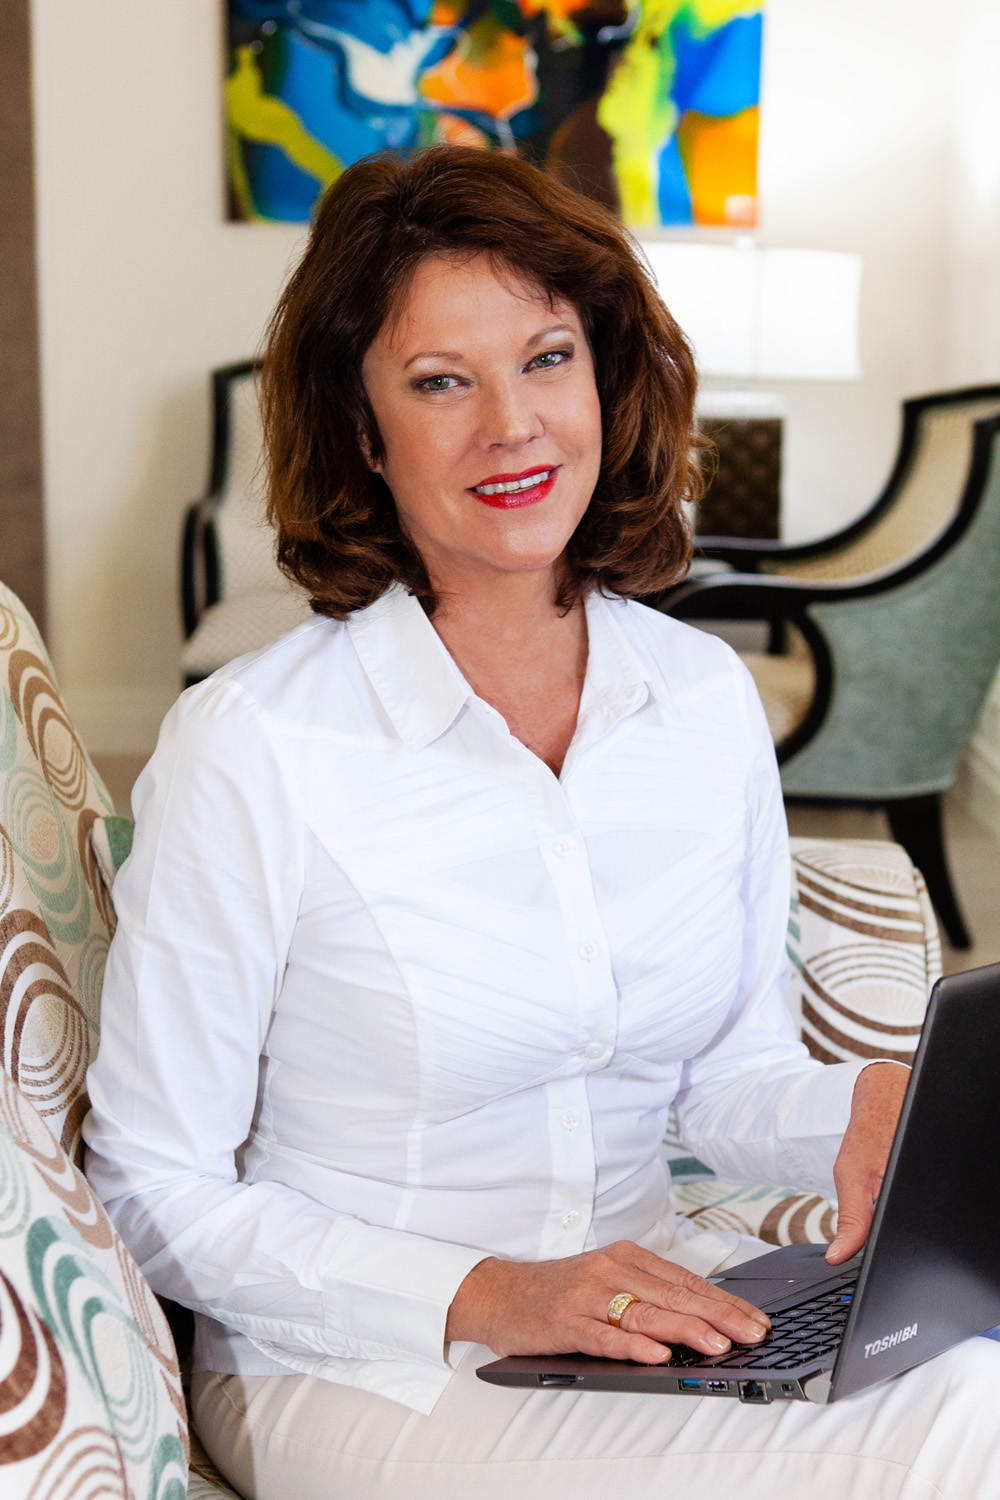 Business woman in a white shirt, working on a laptop, gold coast head shots, gold coast corporate photography, gold coast business photography, gold coast business community, gold coast business woman, gold coast business woman photography, lana noir, @lananoir, gold coast industry professionals, best photographer gold coast, robina photographer, broadbeach photographer